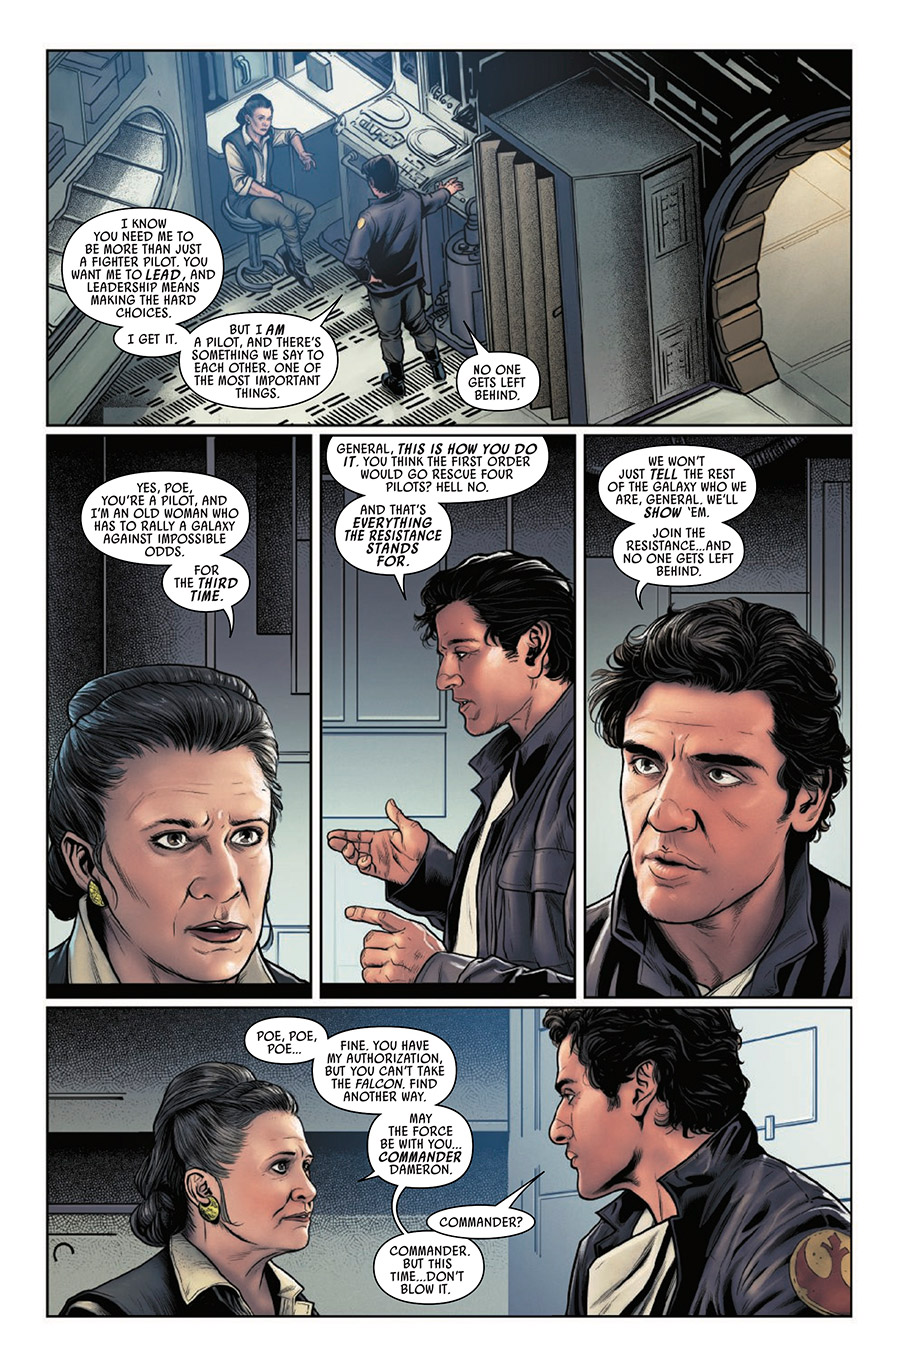 Page 6 from Poe Dameron #31.